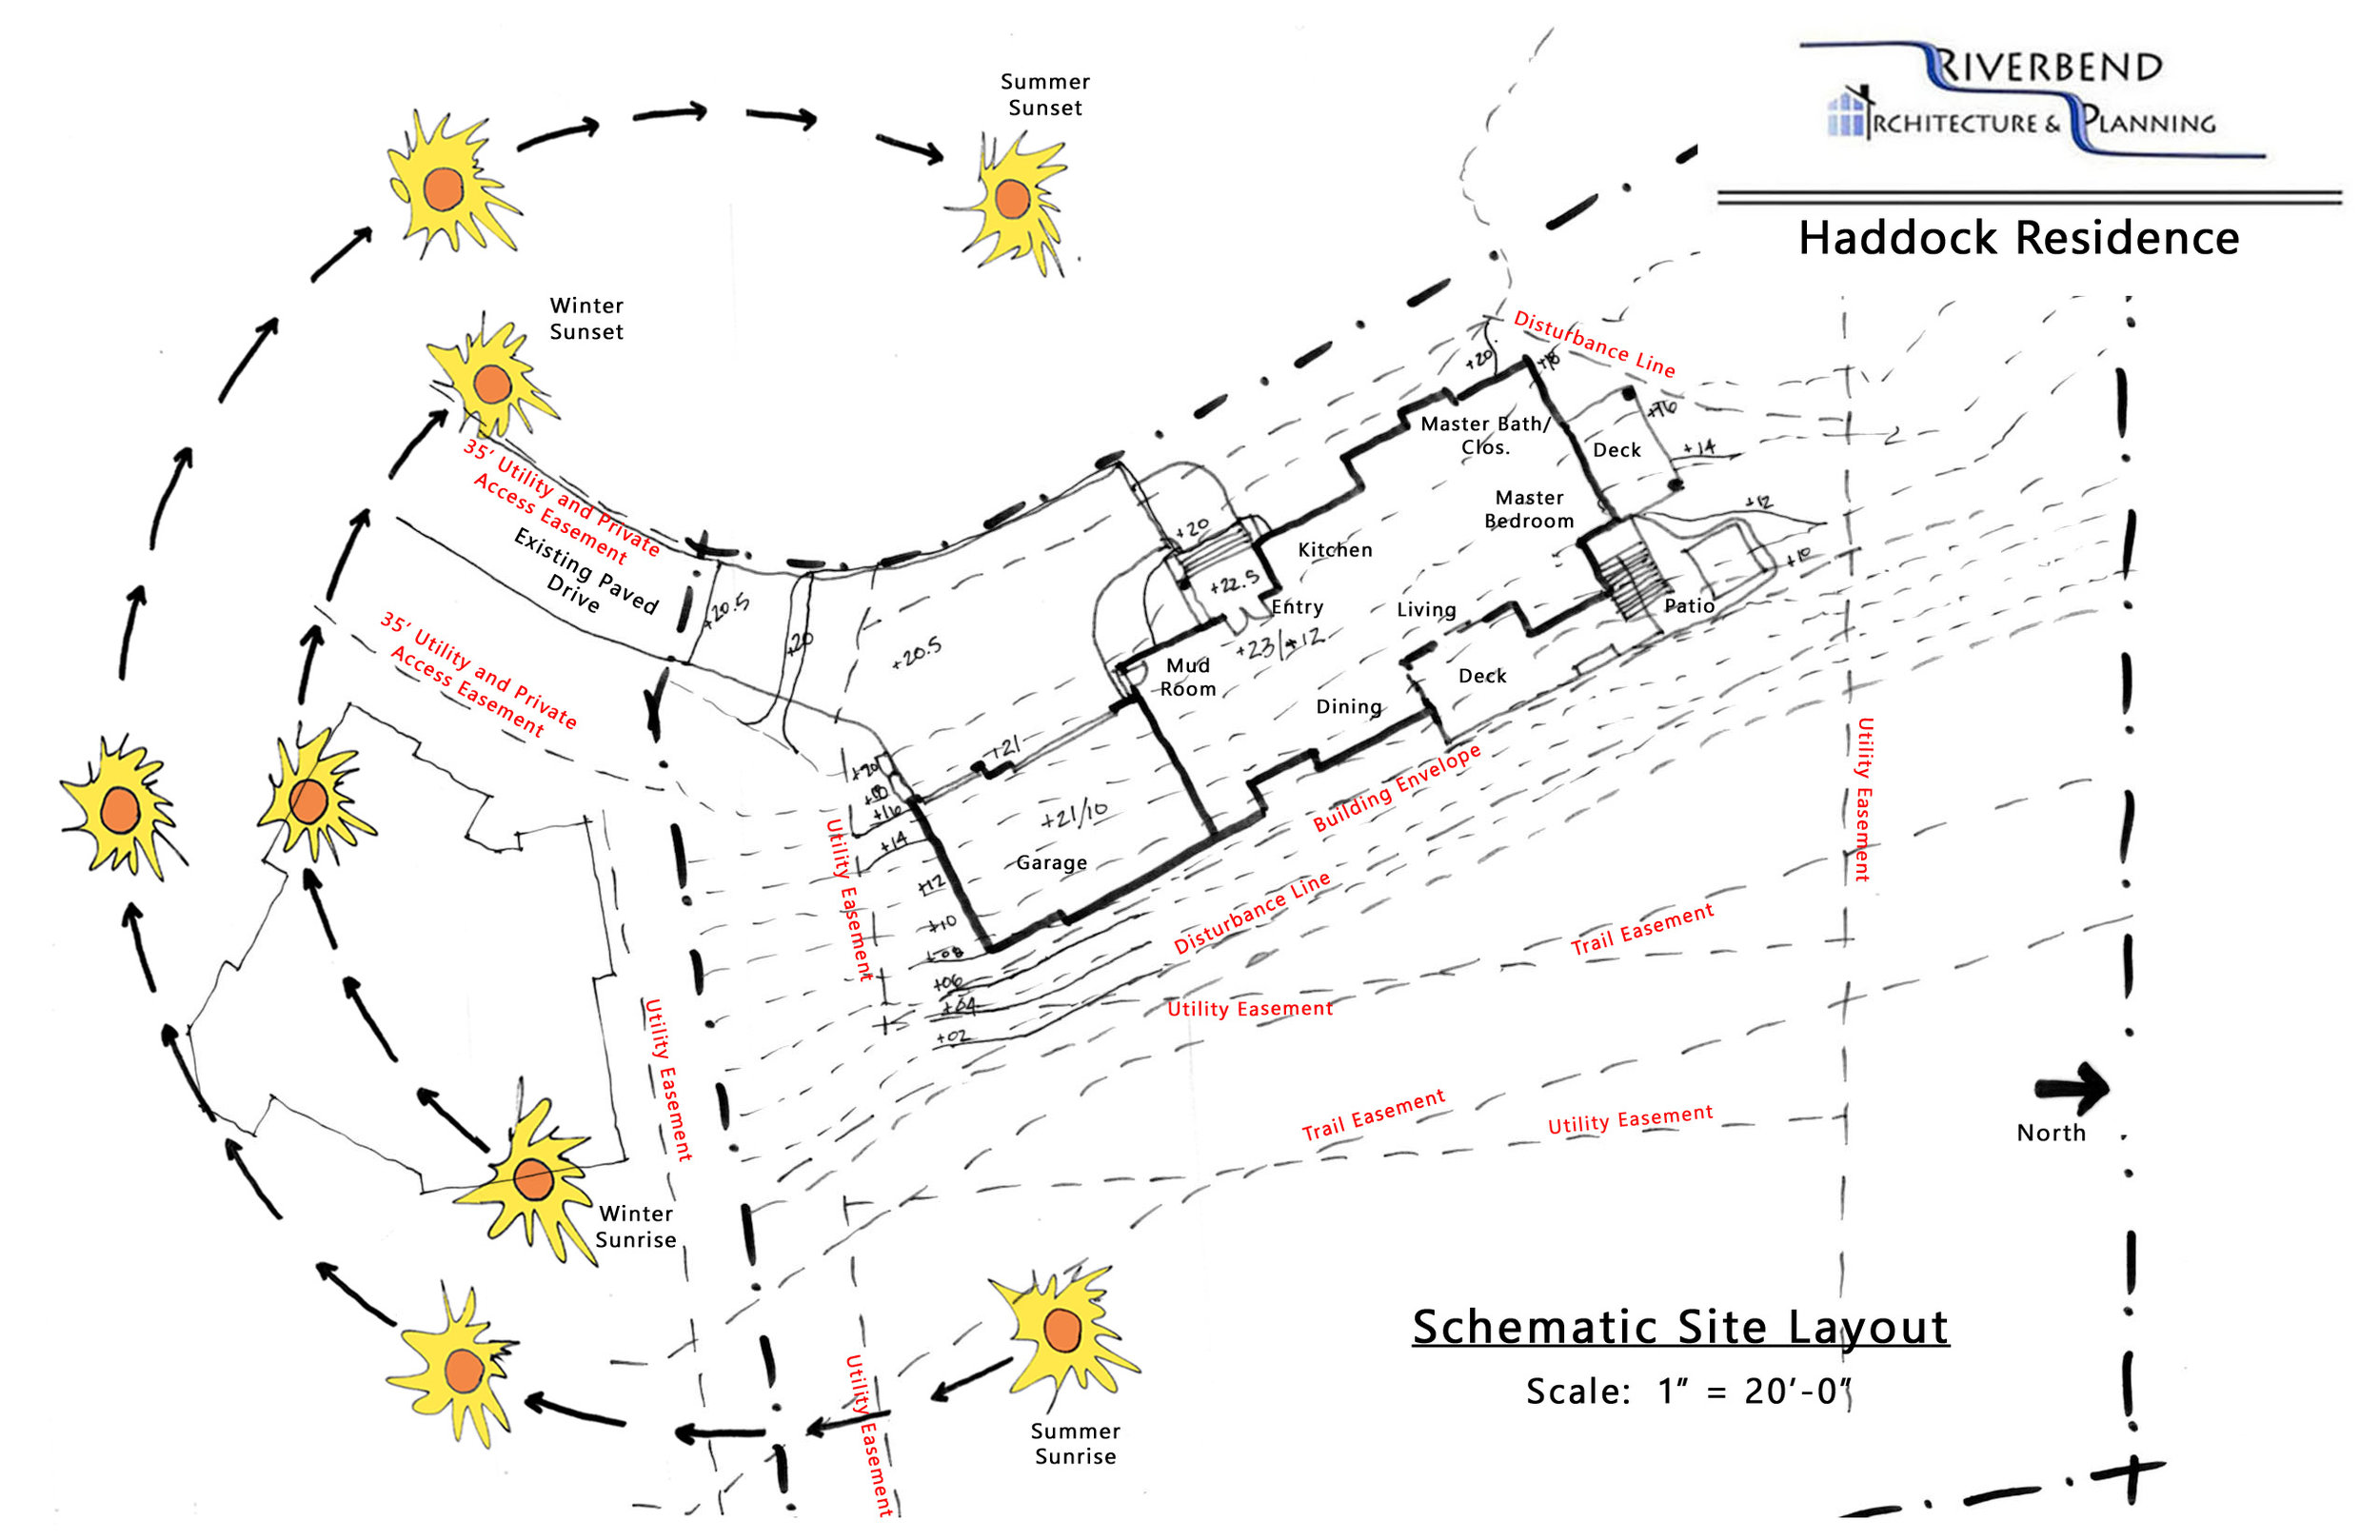 Haddock_Conceptual Review_12126_Page_1.jpg